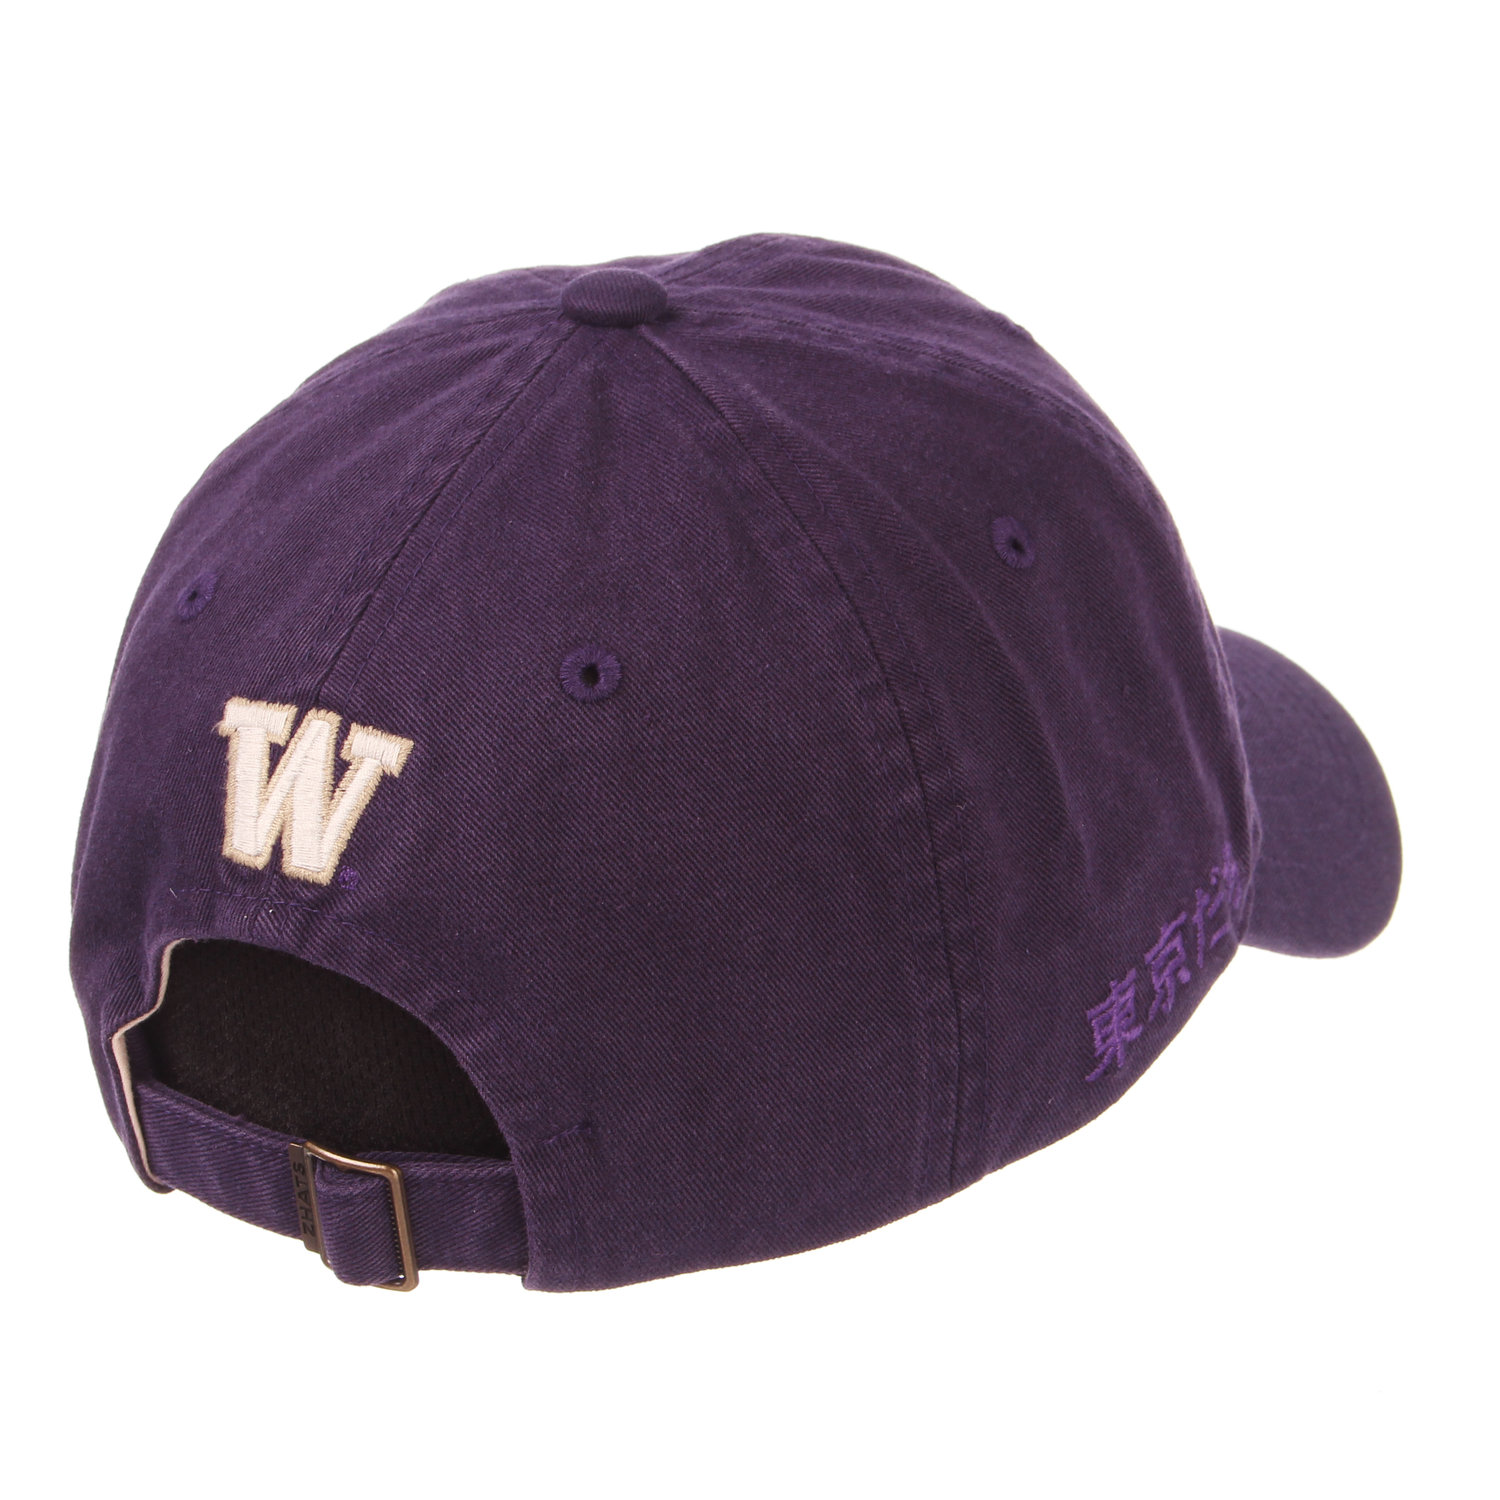 hot sales 5a3d9 d89e8 Zephyr UW Washington Huskies Shibuya Scholarship Adjustable Hat